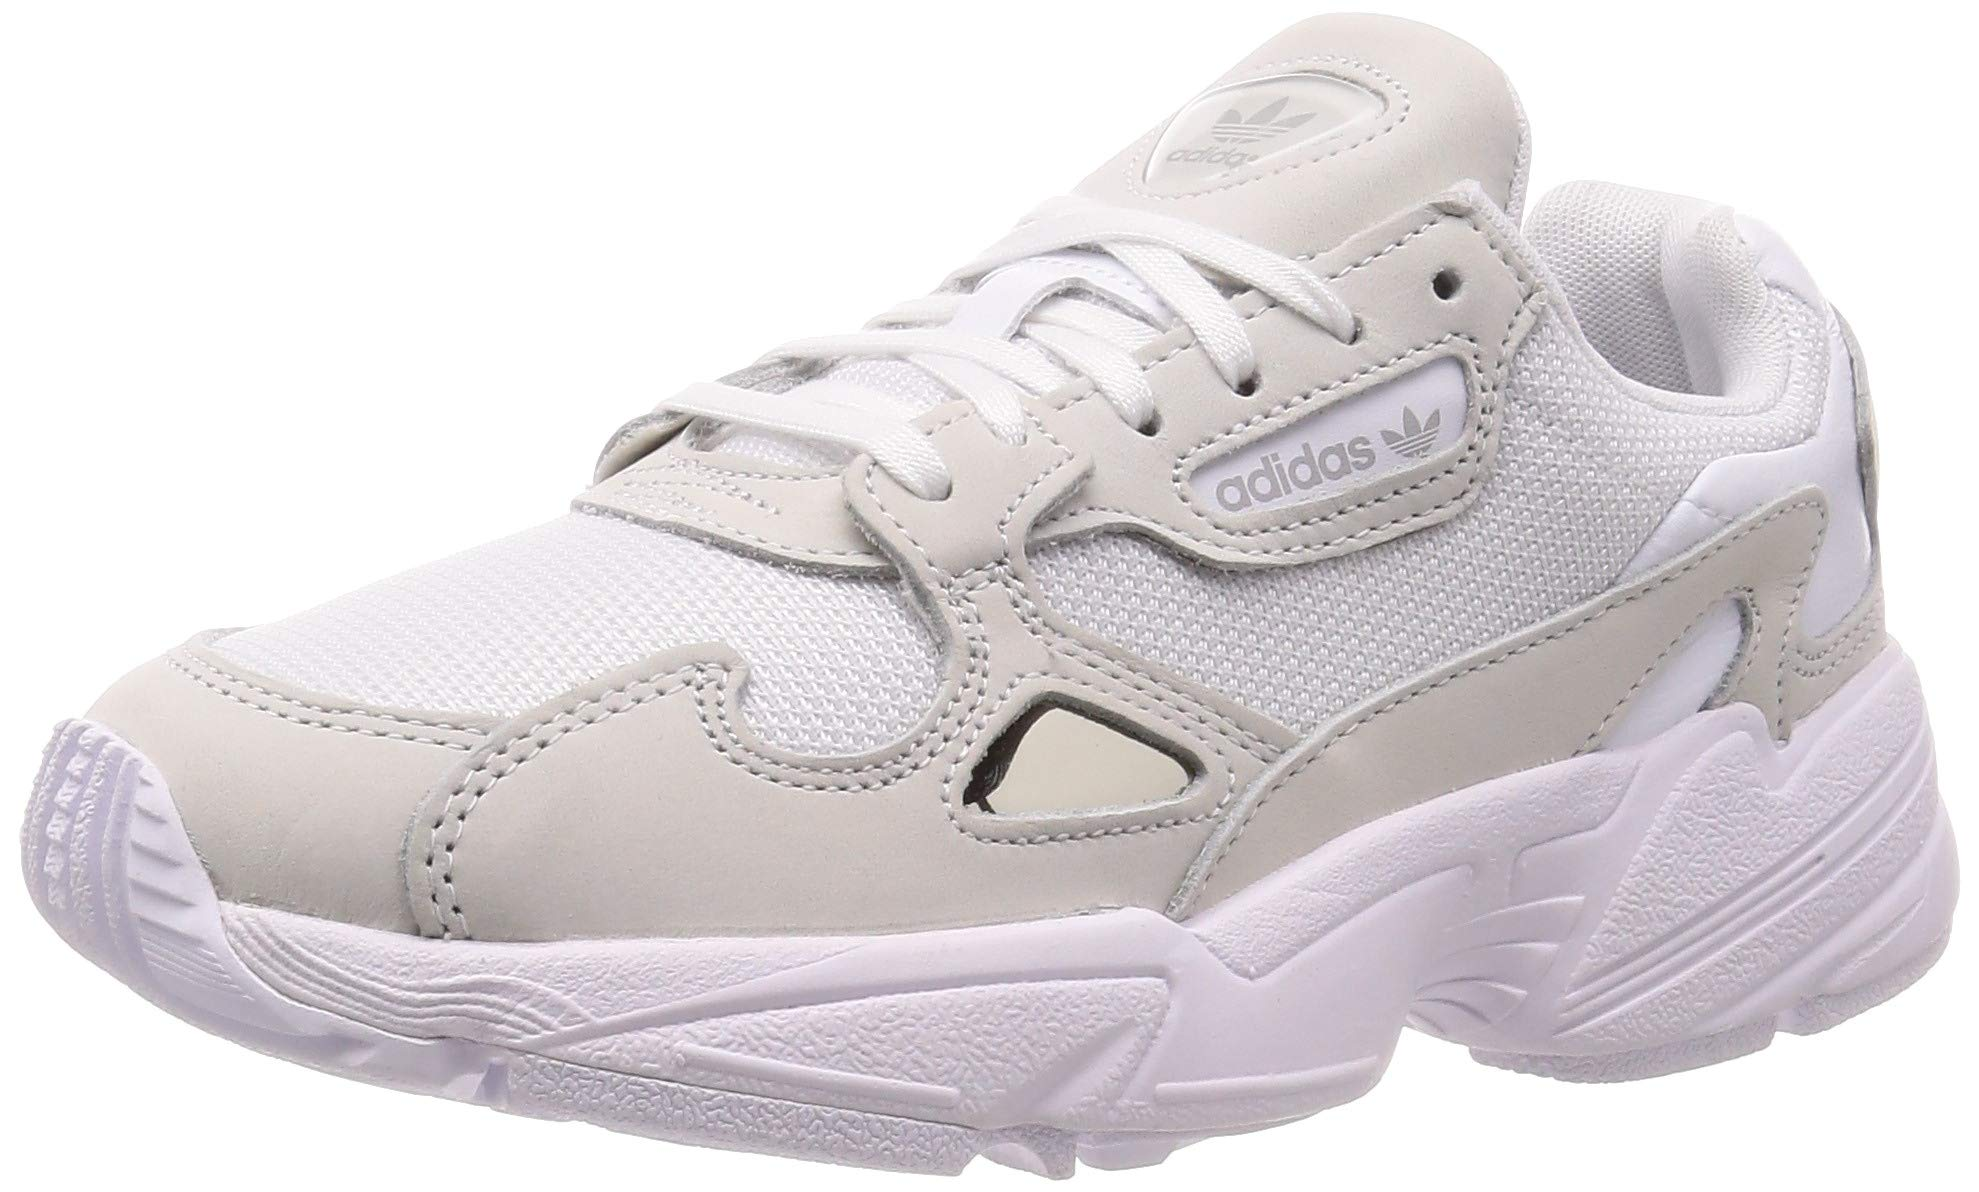 adidas Originals Women's Falcon Sneakers Leather White in Size US 7.5